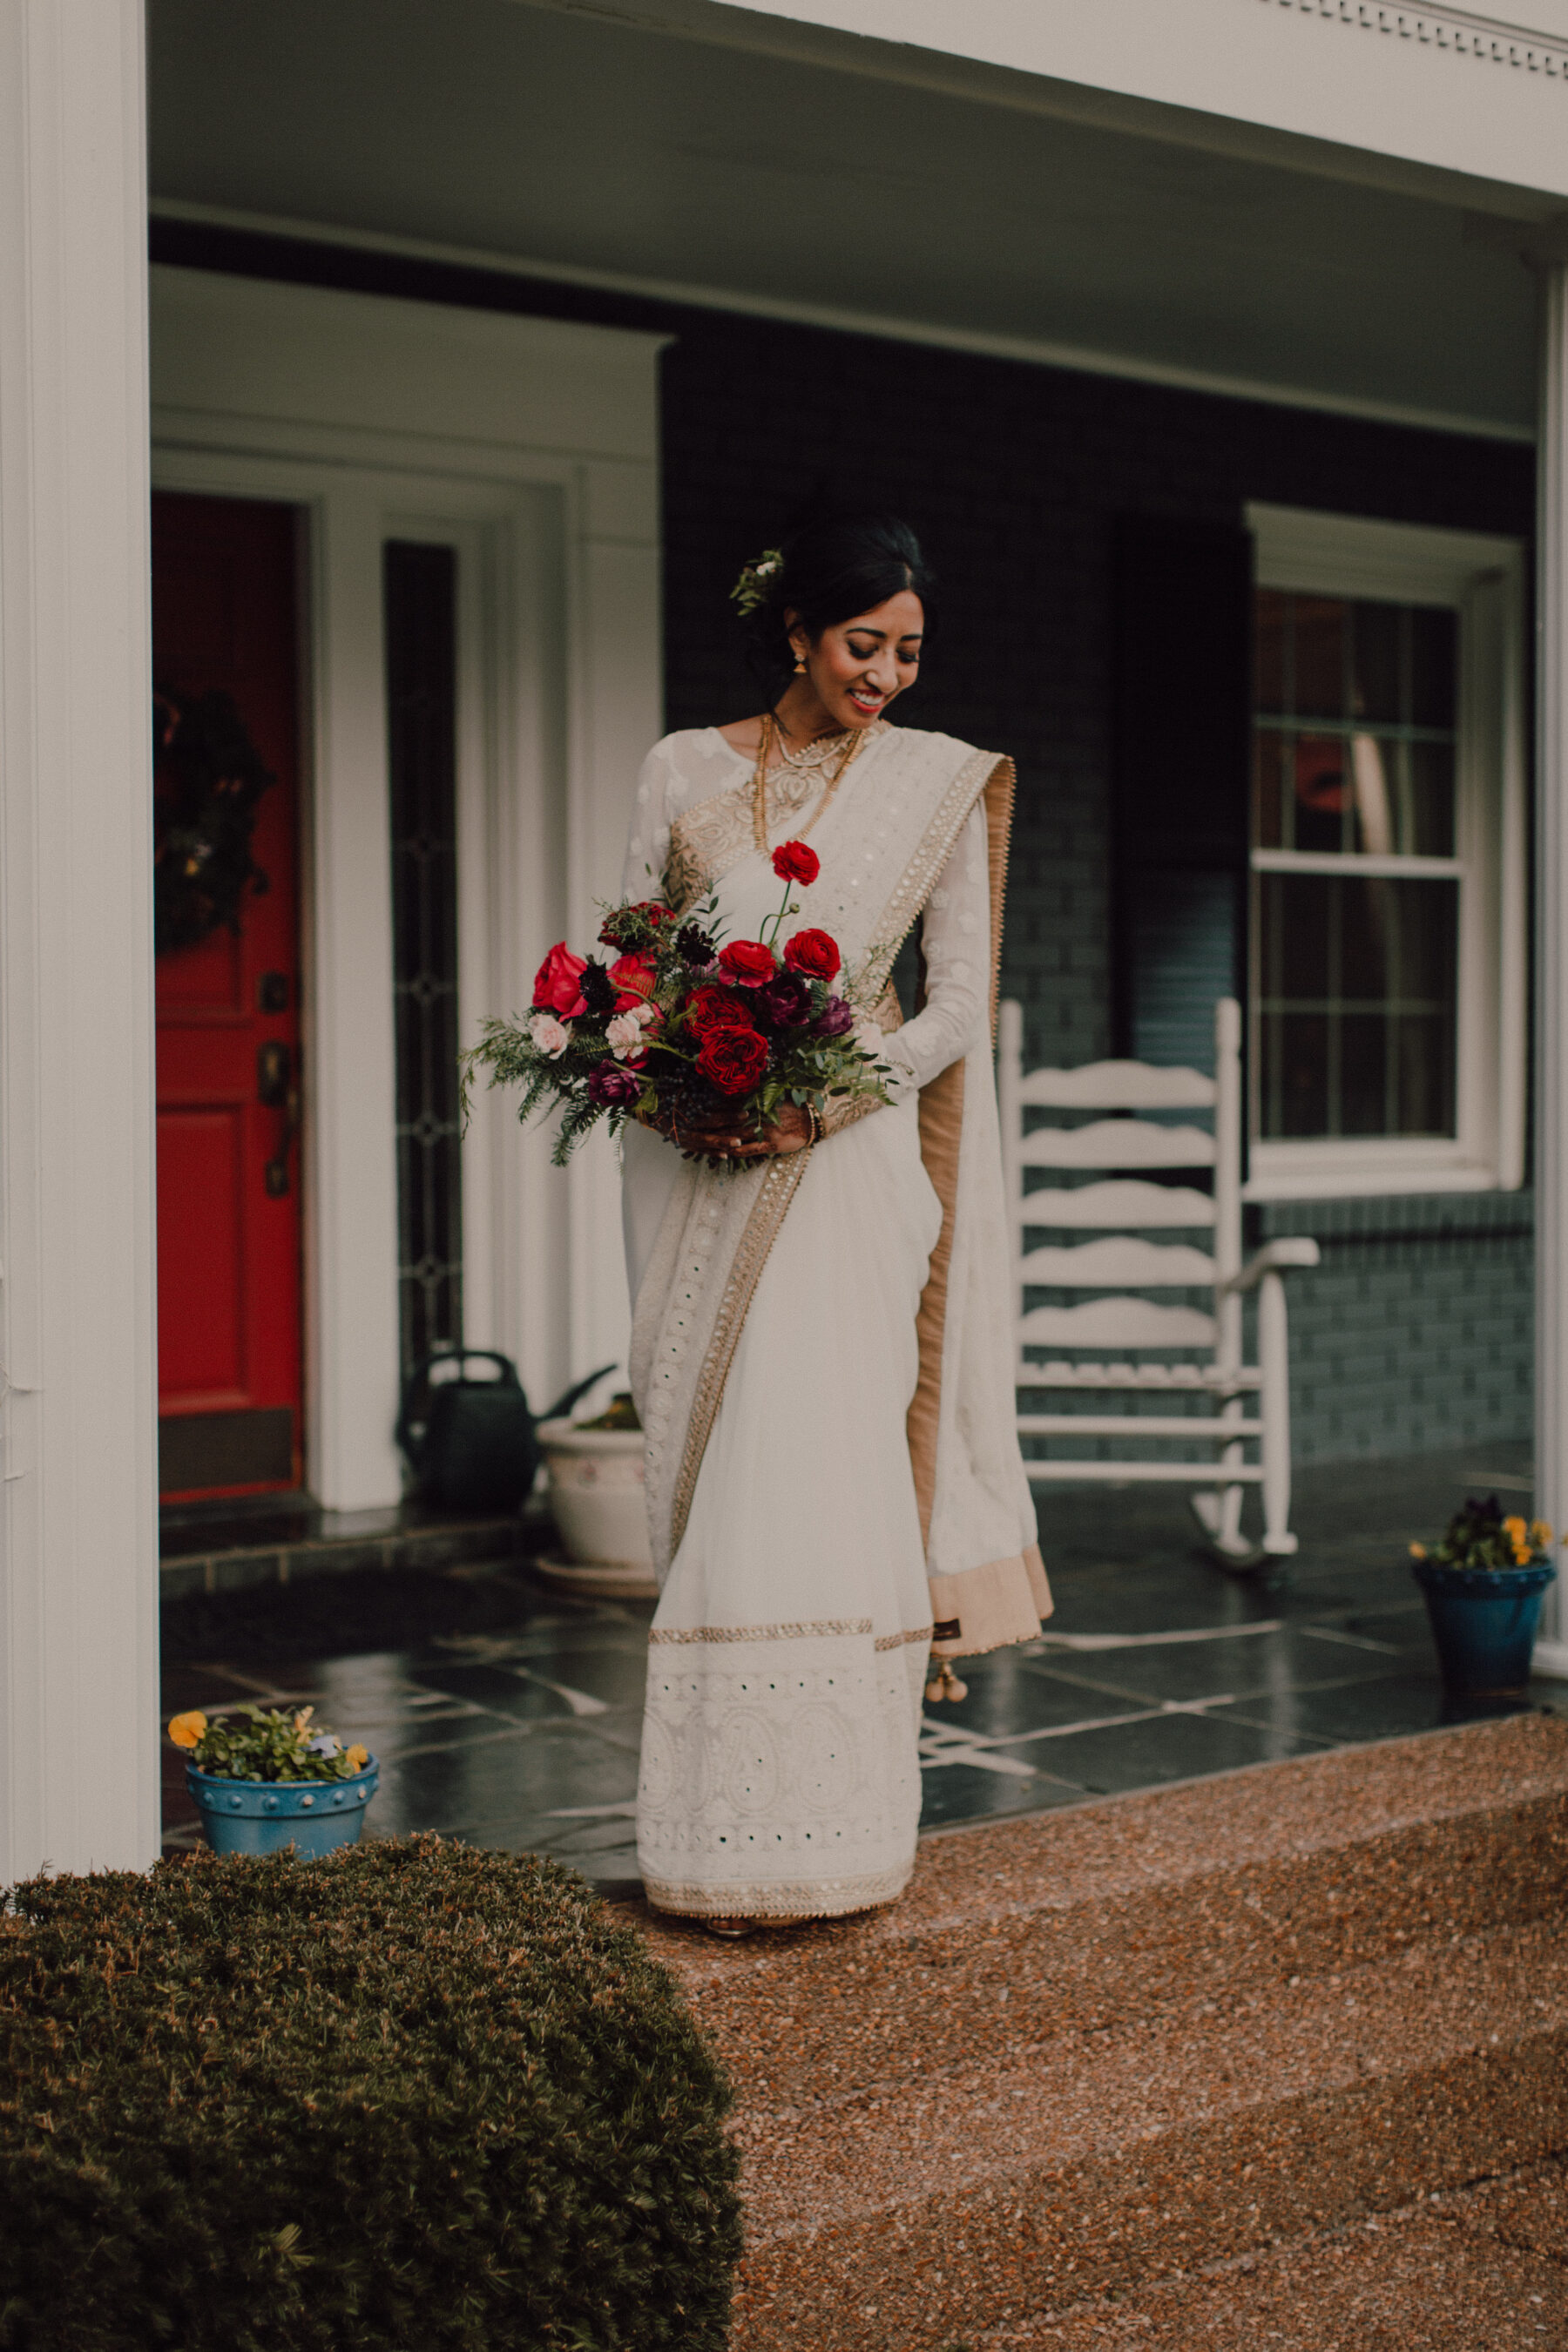 Bridal portrait by Cody and Allison | Nashville Bride Guide